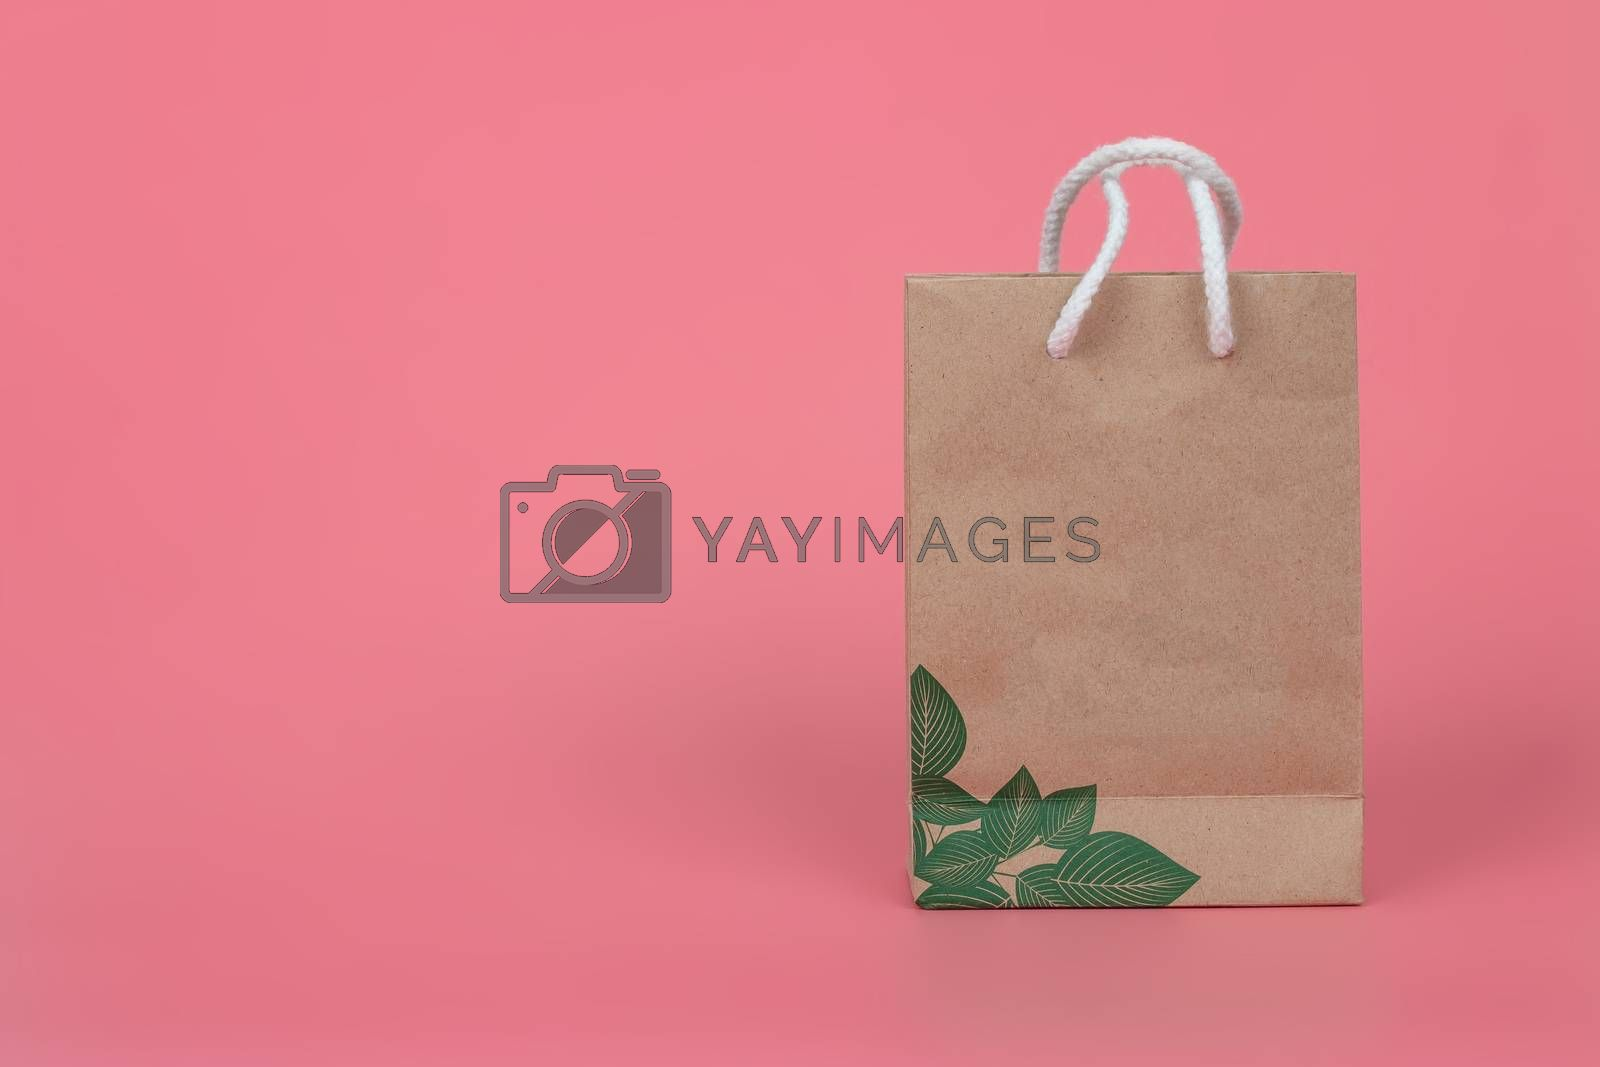 Paper bags on pastel pink backgrounds, environmental conservation concept